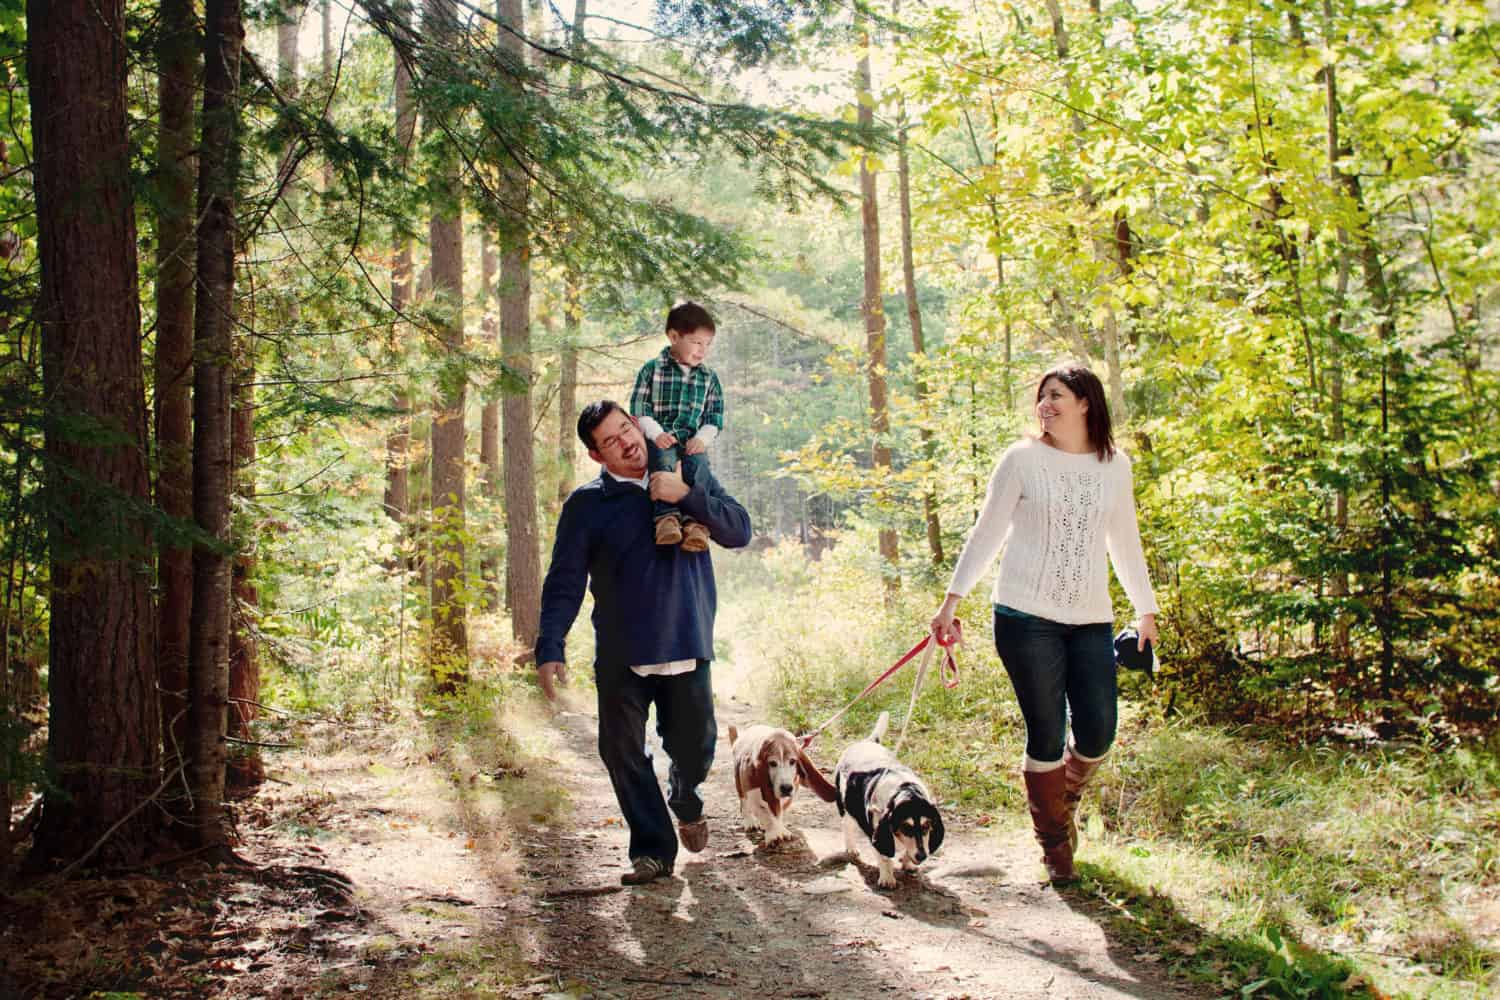 Family of three plus two dogs walking in a beautiful sunlit forest